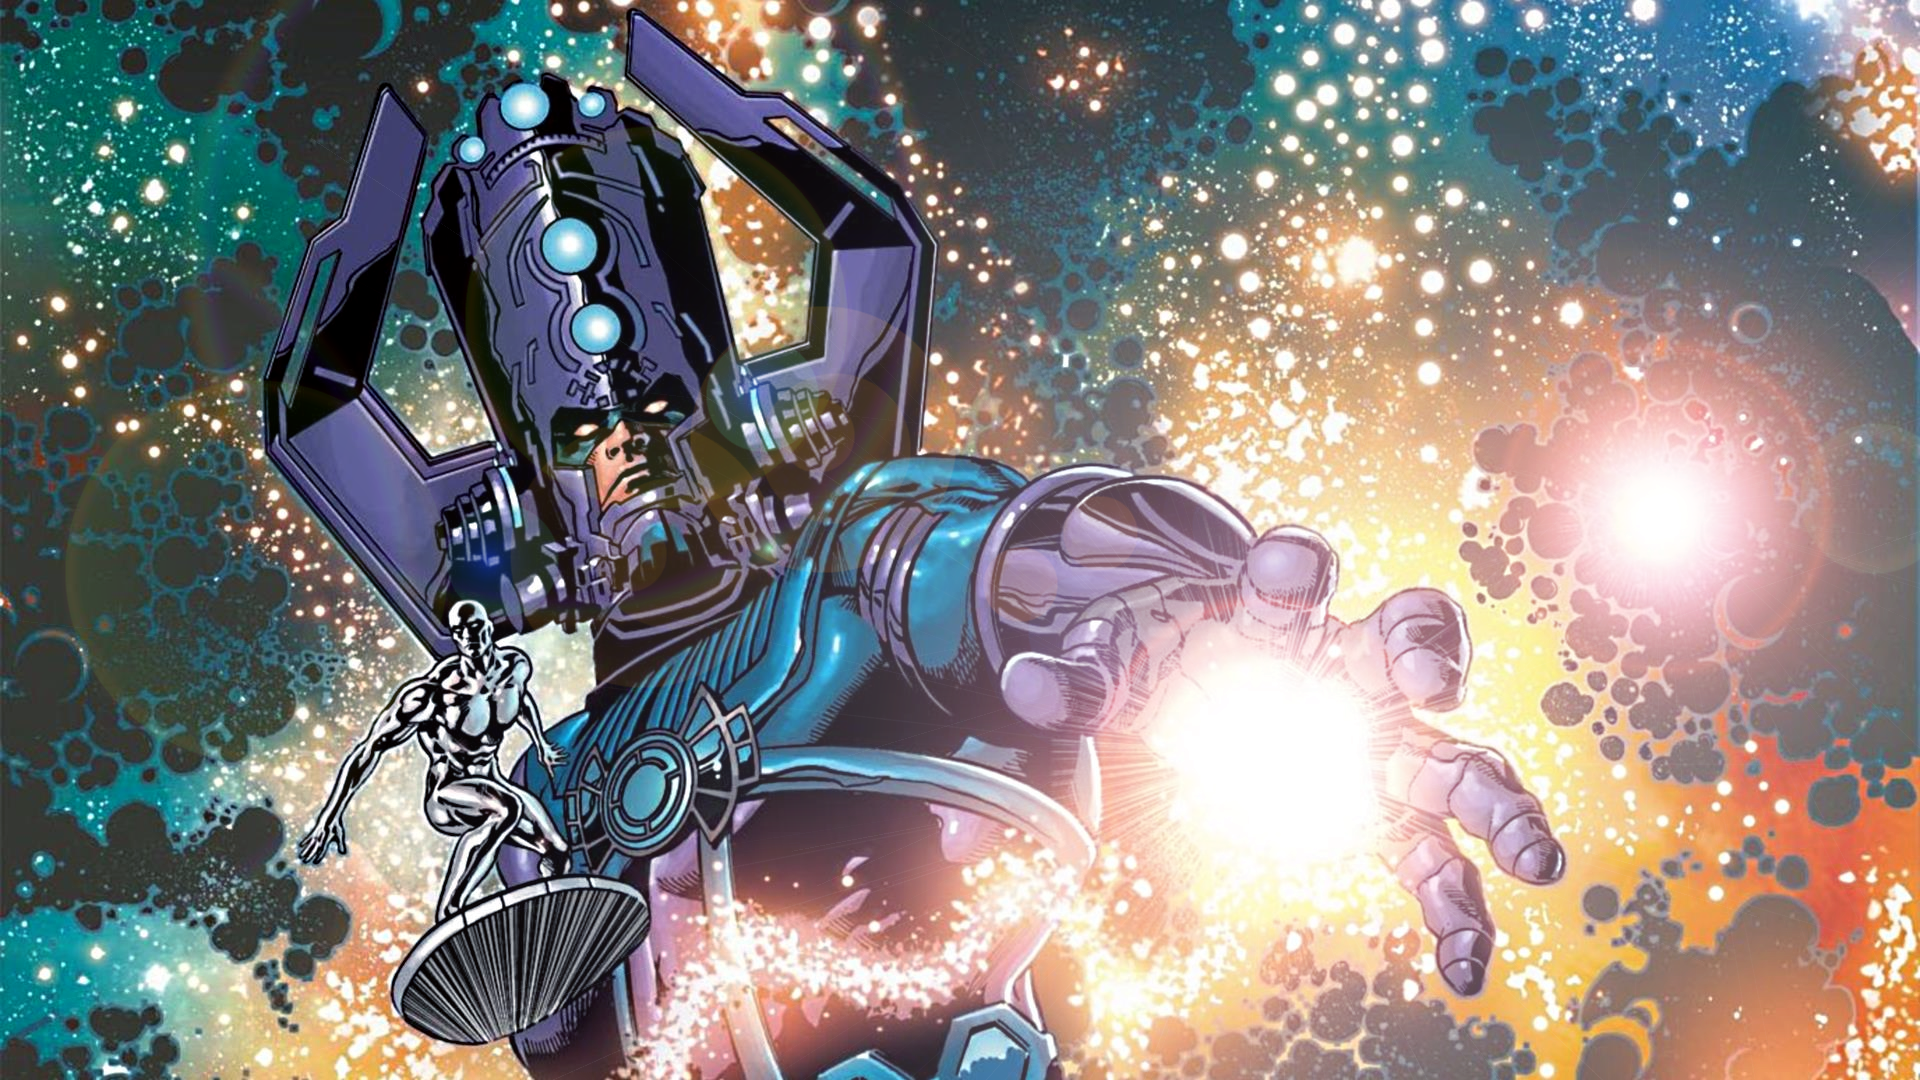 Silver Surfer Galactus Wallpaper   Viewing Gallery 1920x1080